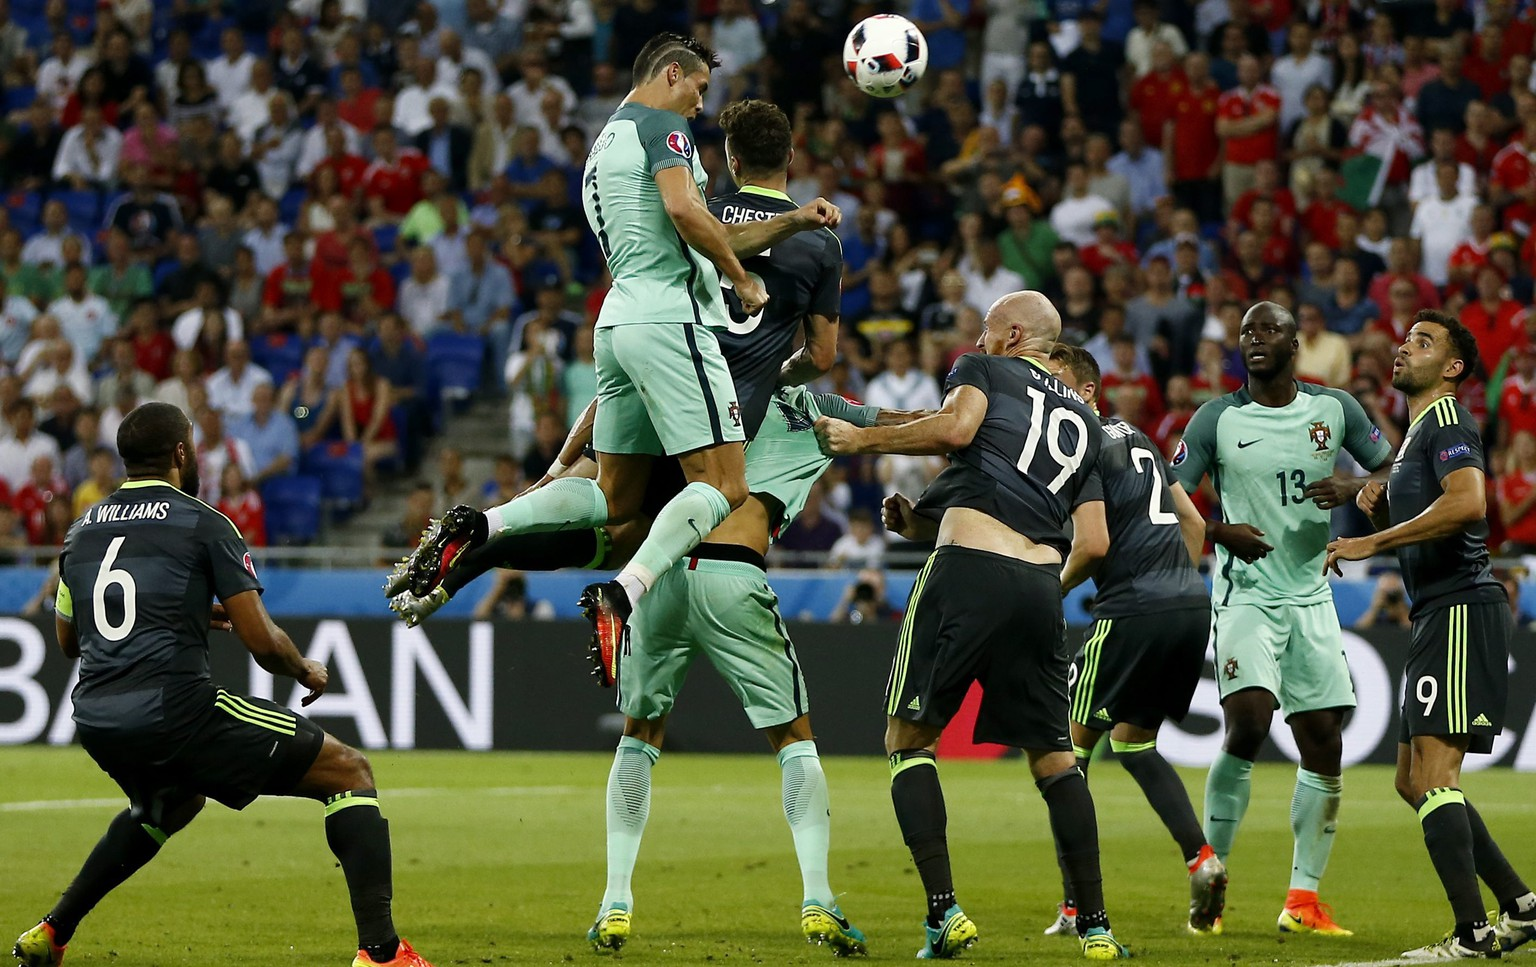 epa05411749 Cristiano Ronaldo (C-L) of Portugal goes for a header to score the opening goal during the UEFA EURO 2016 semi final match between Portugal and Wales at Stade de Lyon in Lyon, France, 06 July 2016.